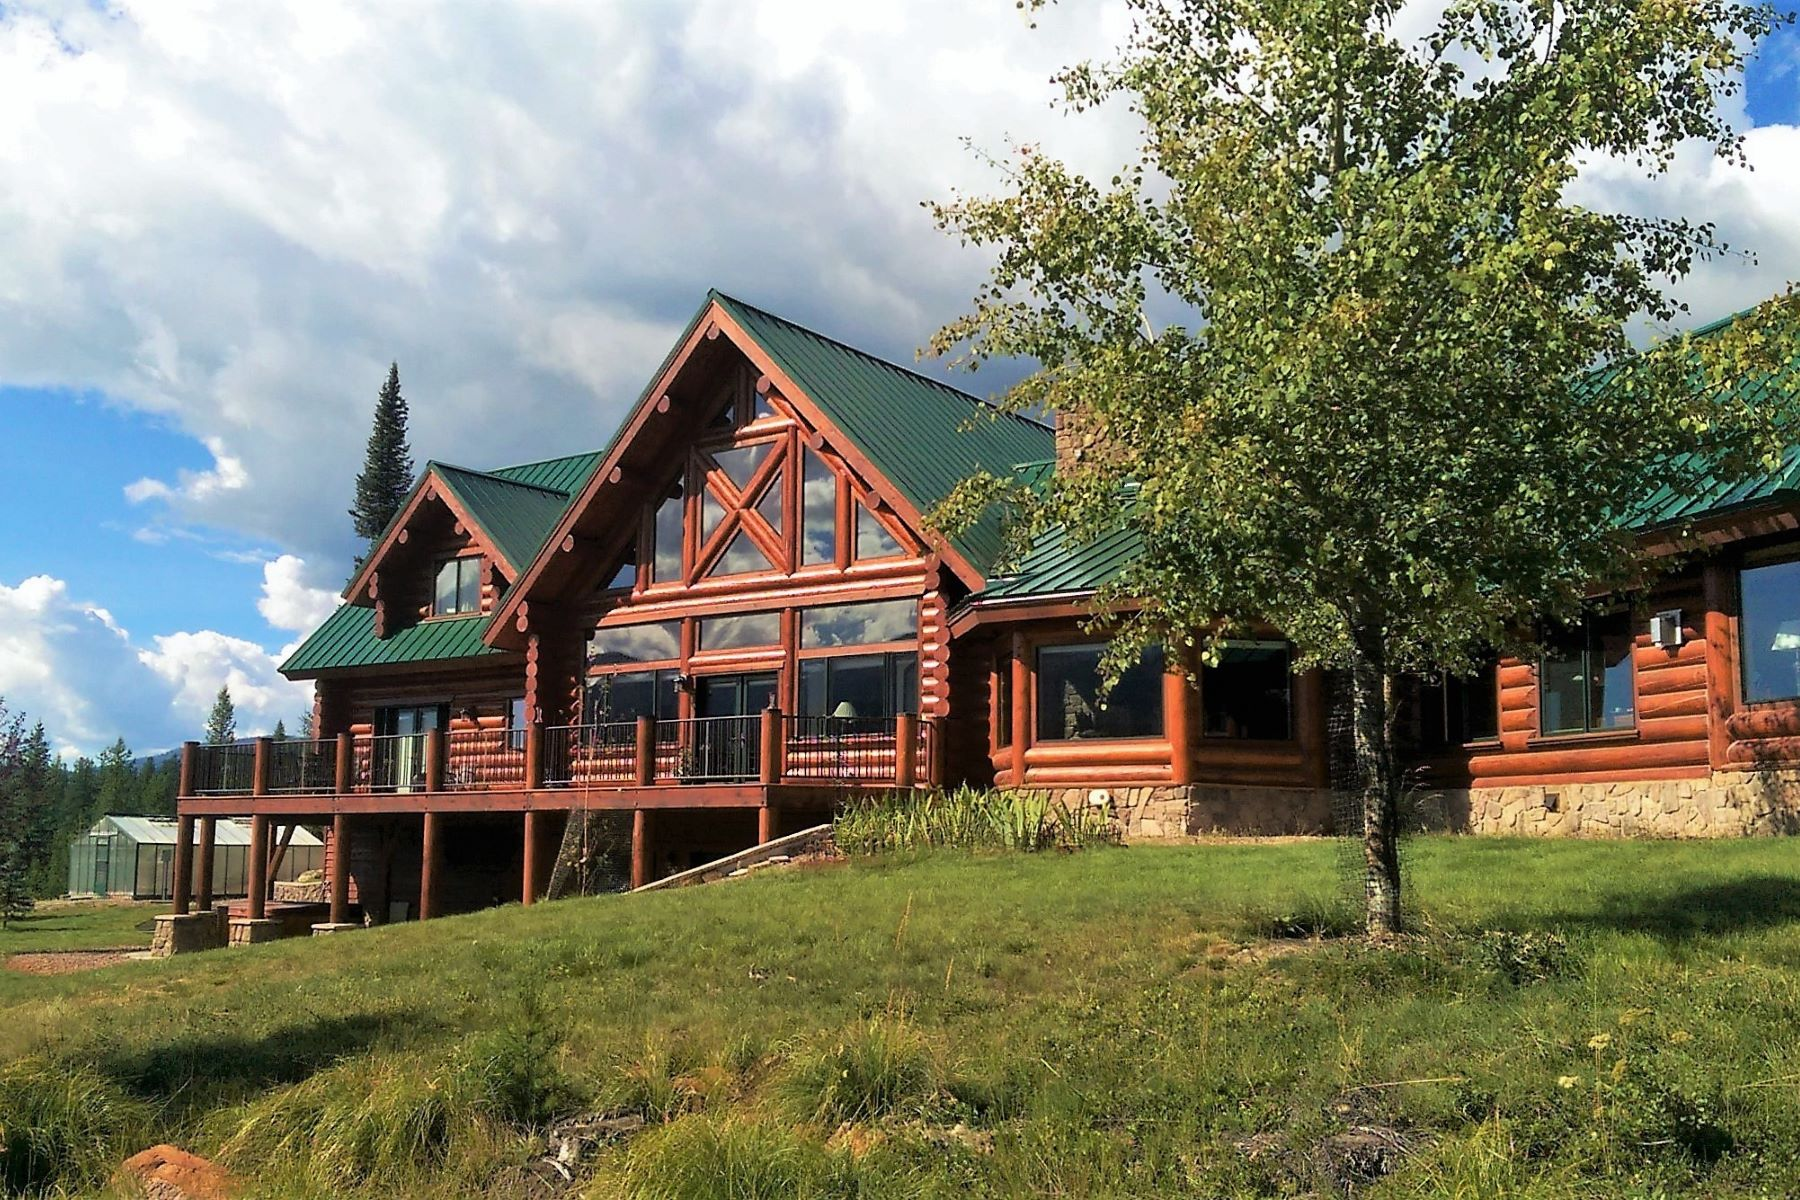 Single Family Home for Sale at 4959 Hwy 83 N, Seeley Lake, MT 59868 4959 Hwy 83 N Seeley Lake, Montana 59868 United States